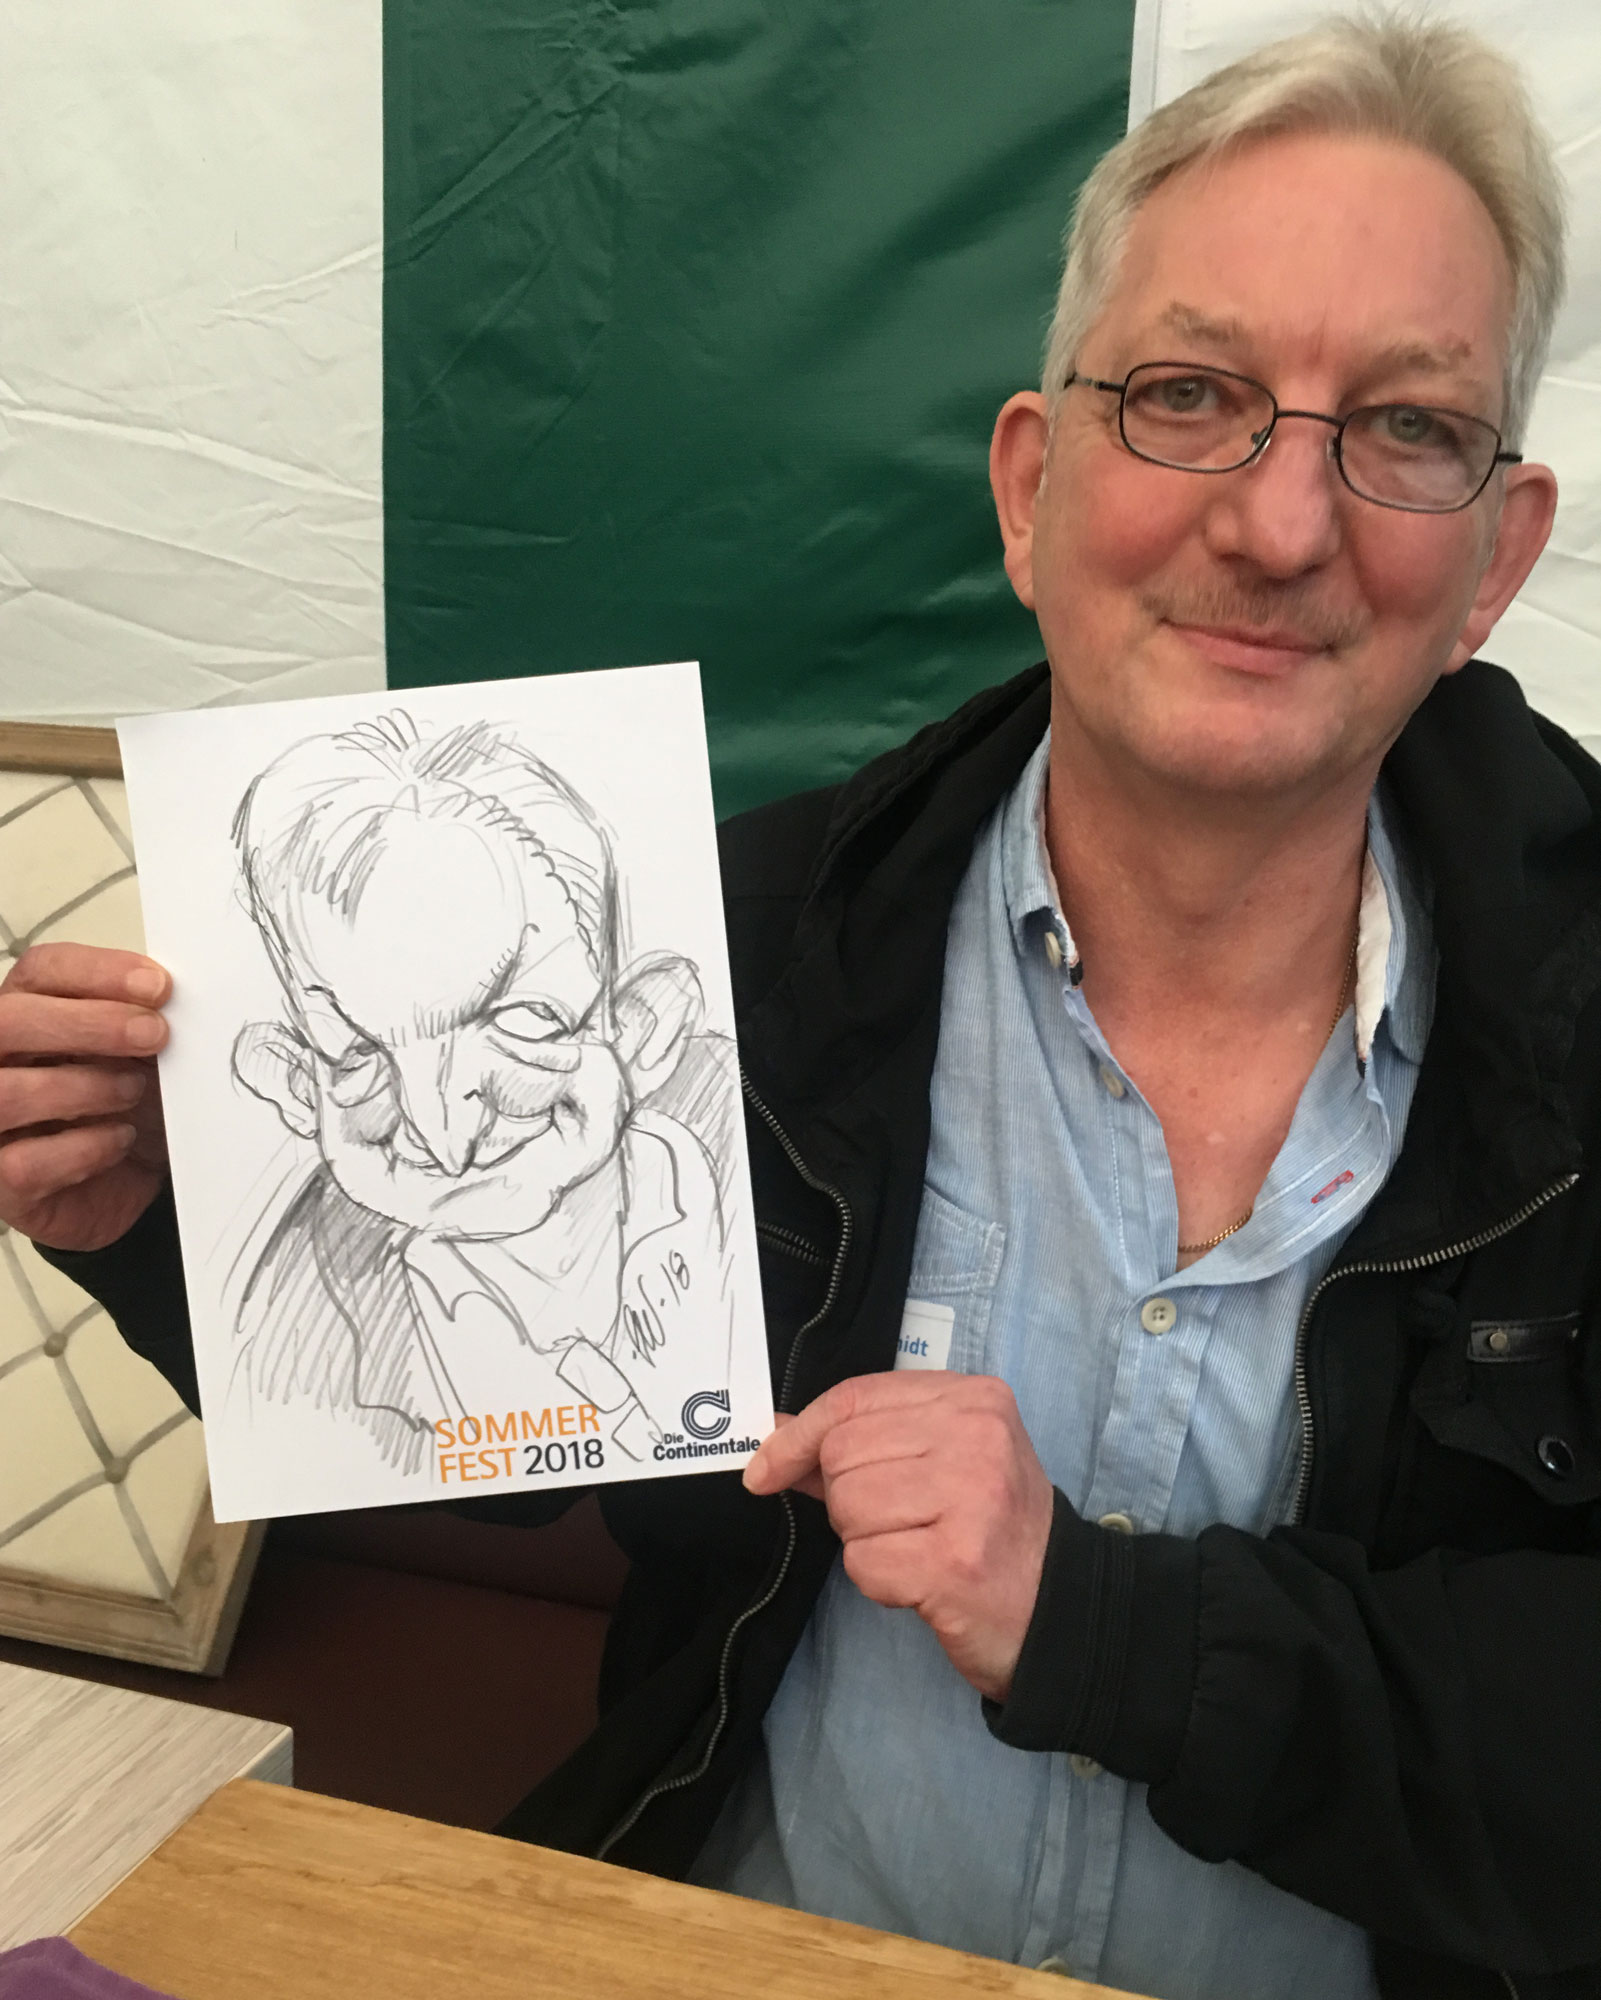 Caricature Drawing. Die Continentale Sommer Fest 2018.